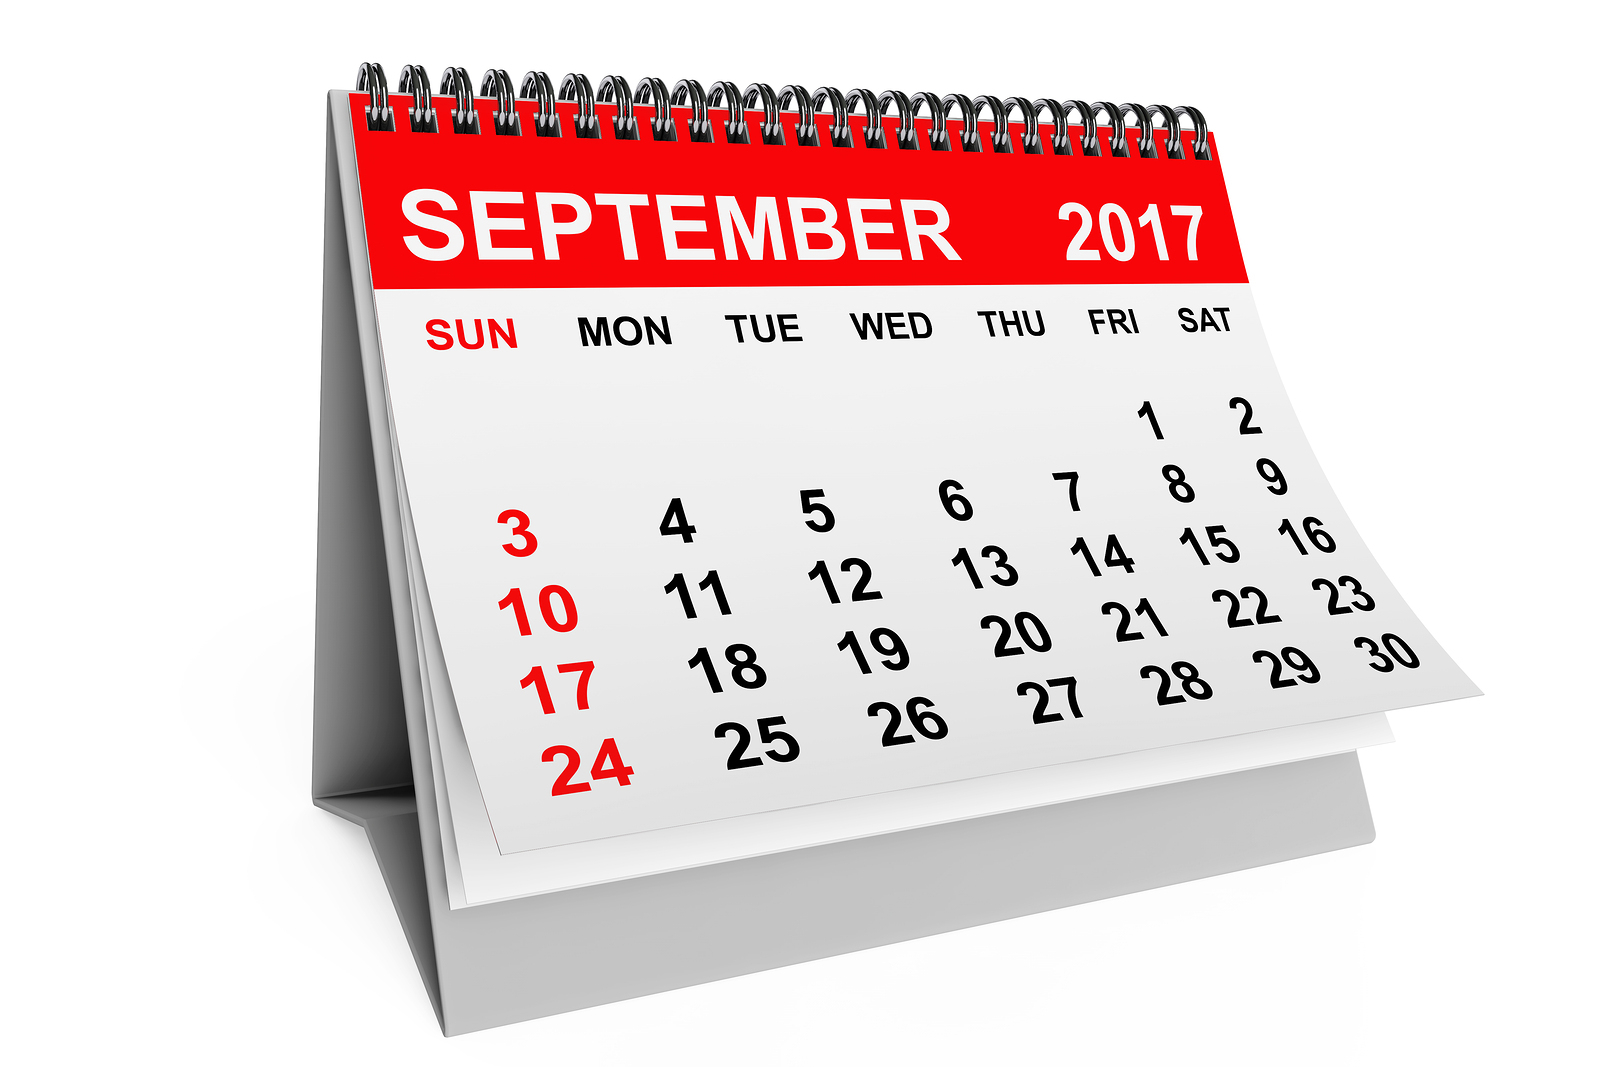 September 2017 Calendar Alerts - Fountain Valley High School With Regard To Fountain Valley High School Calendar